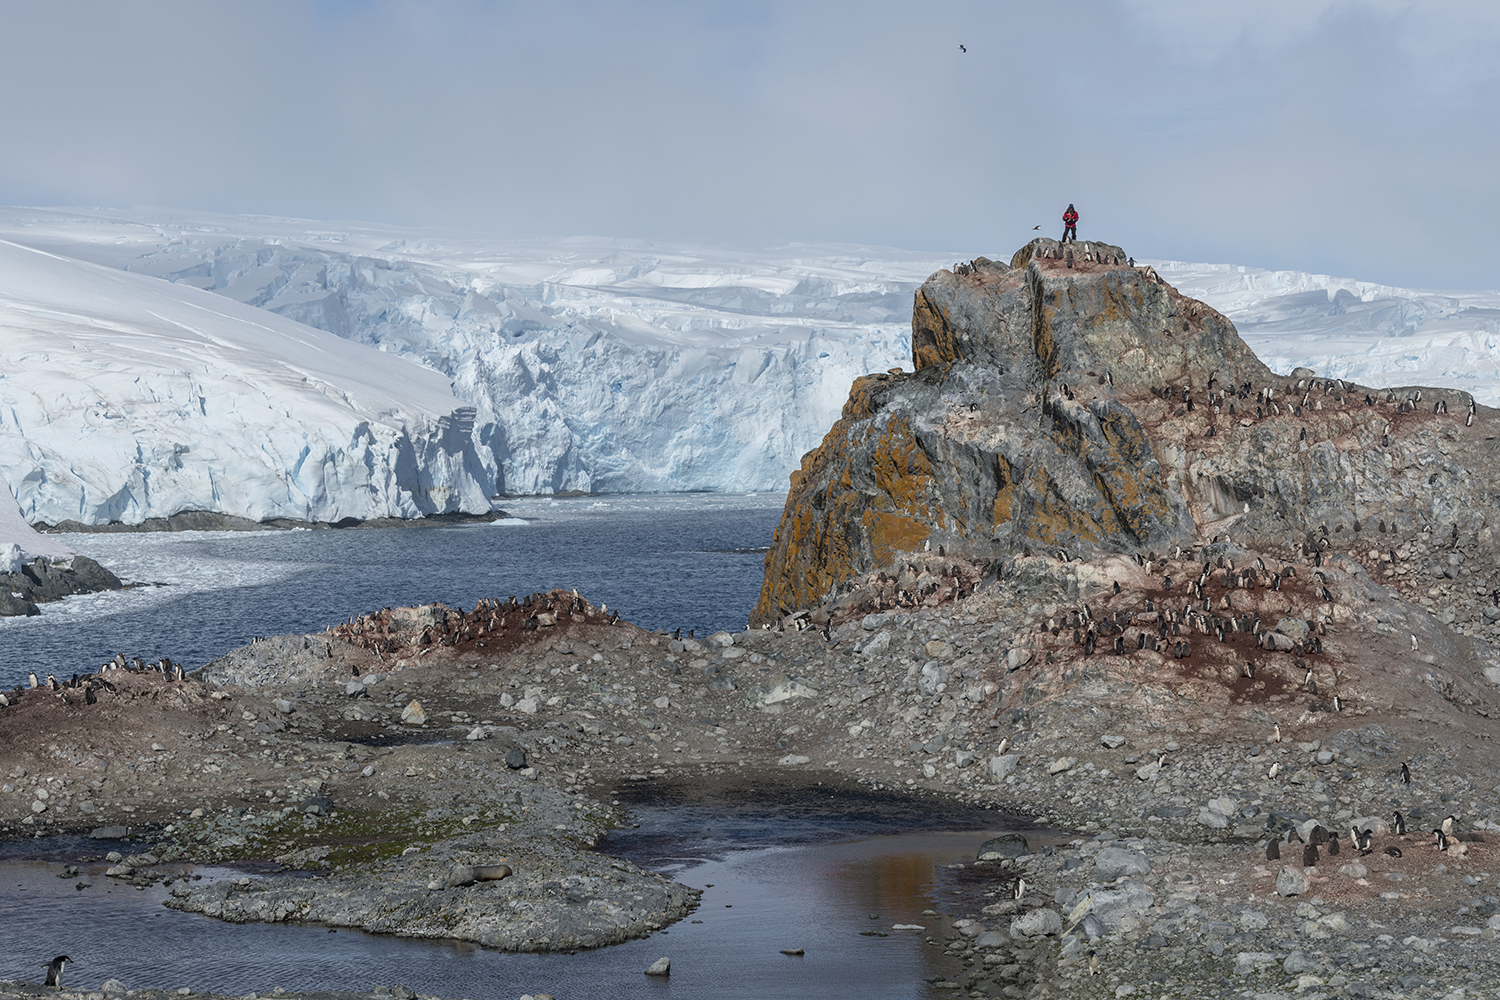 Penguin scientist Steven Forrest from Stony Brook University climbing up a rock to count chinstrap penguin nests, to collect data about the population, on Anvers Island in the Antarctic.